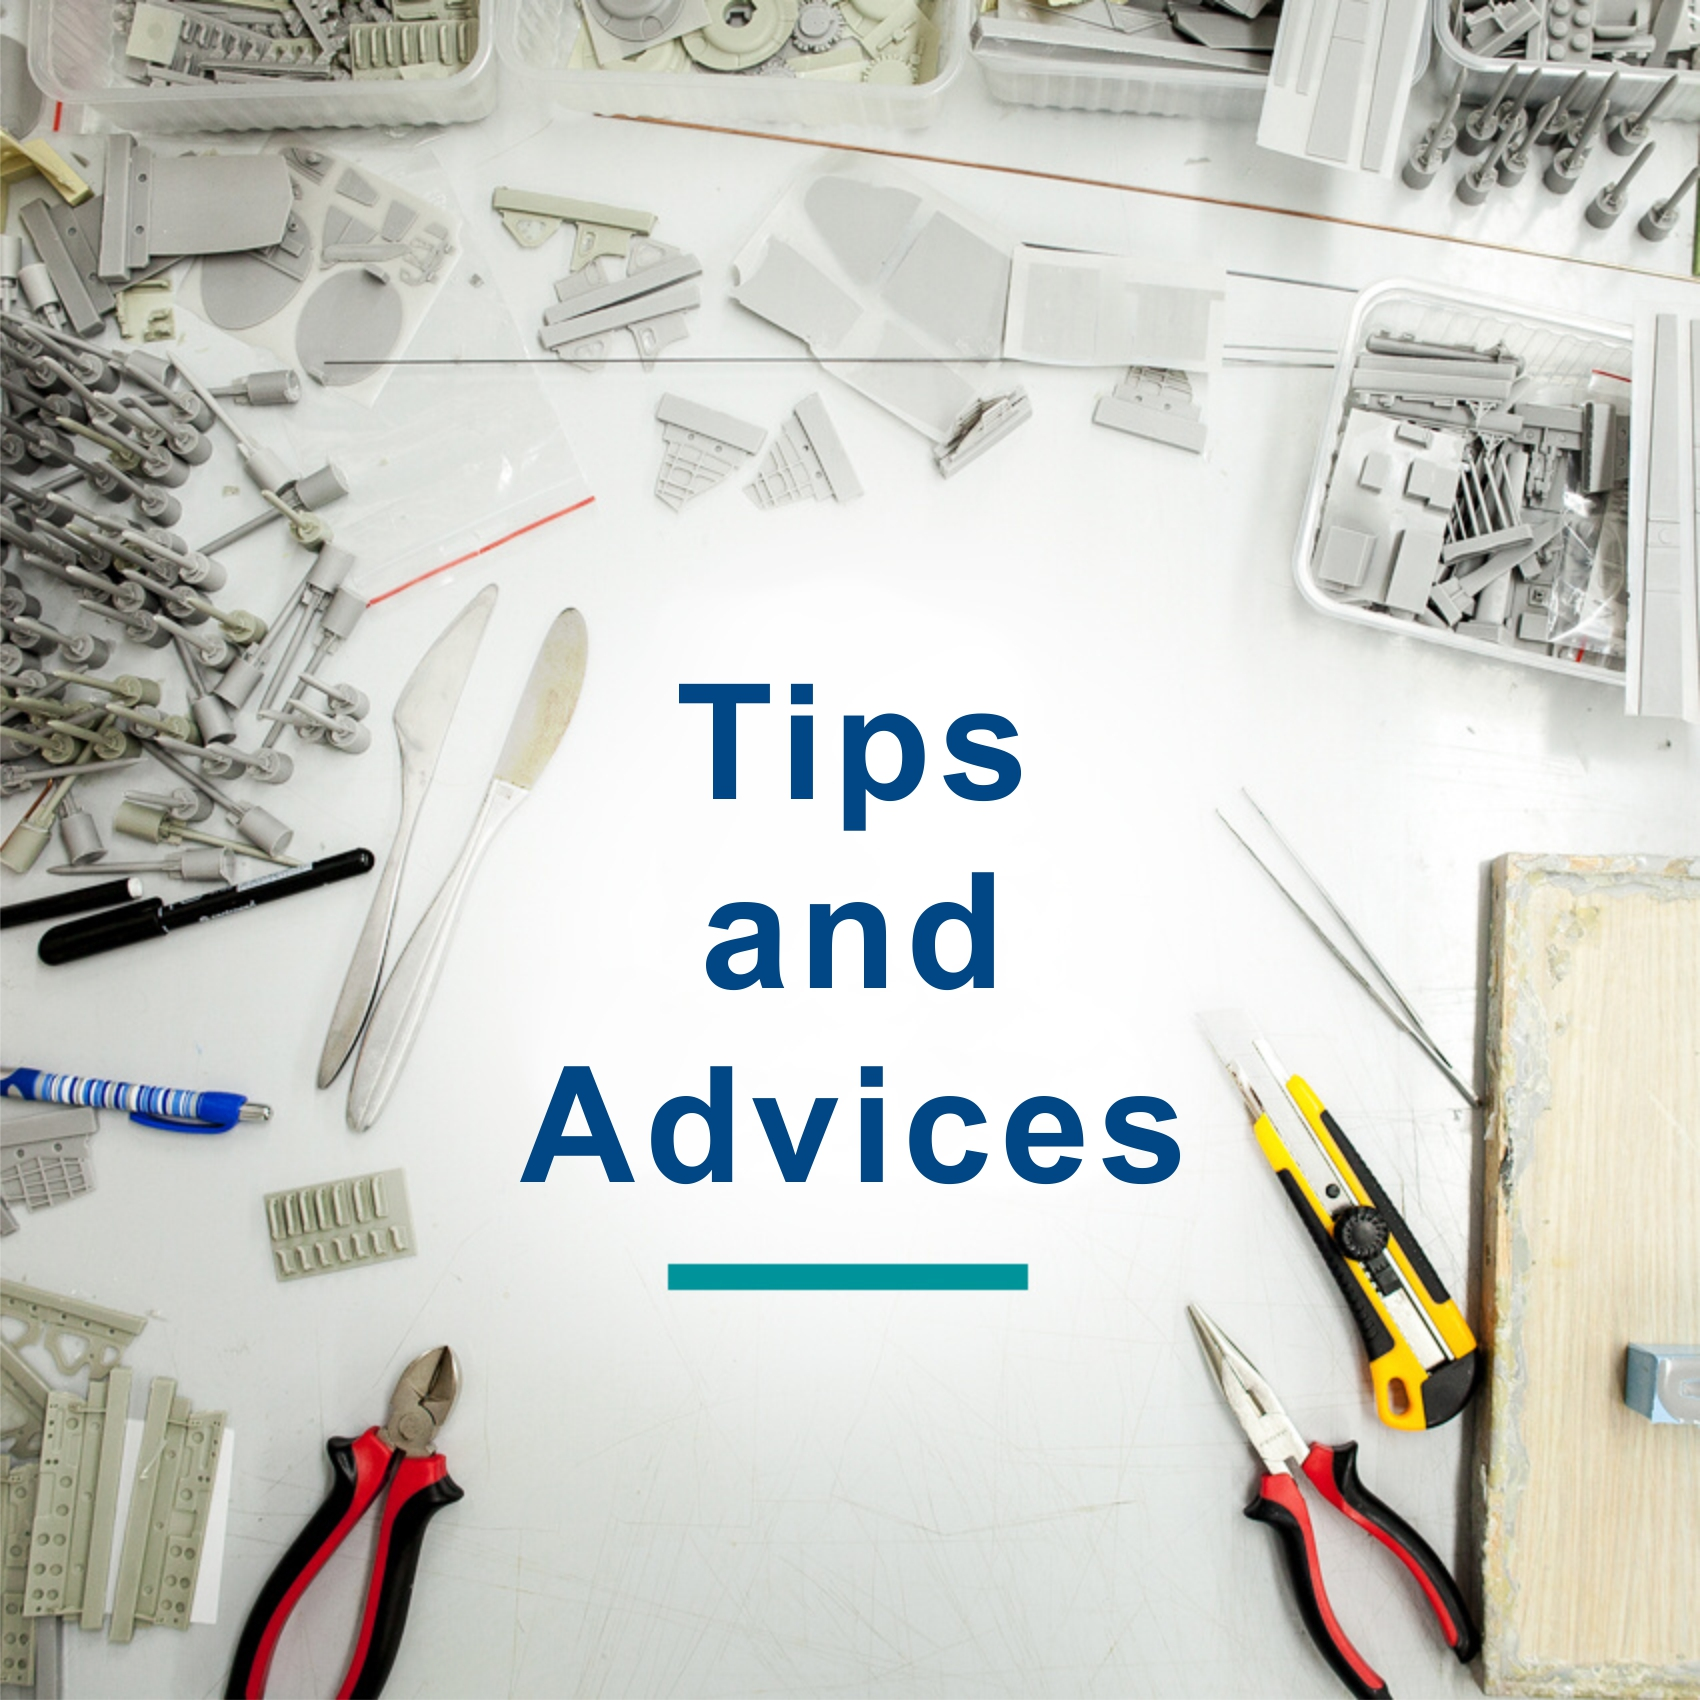 tips_and_advices